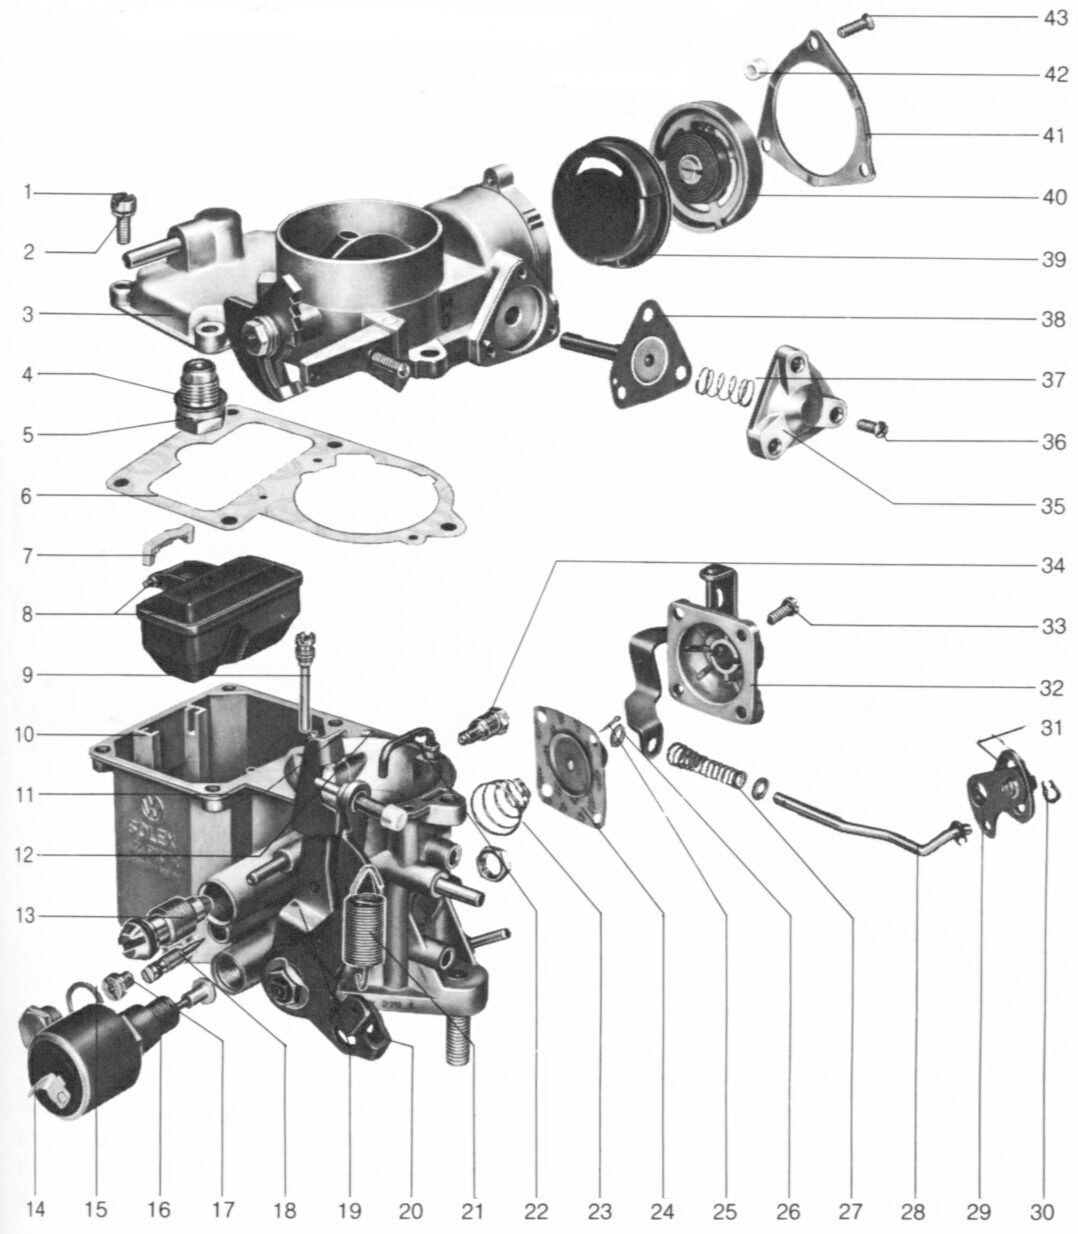 hight resolution of a general exploded view of the 34pict 3 carburetor is shown in the following diagram following that is a listing of the parts giving nomenclature and part